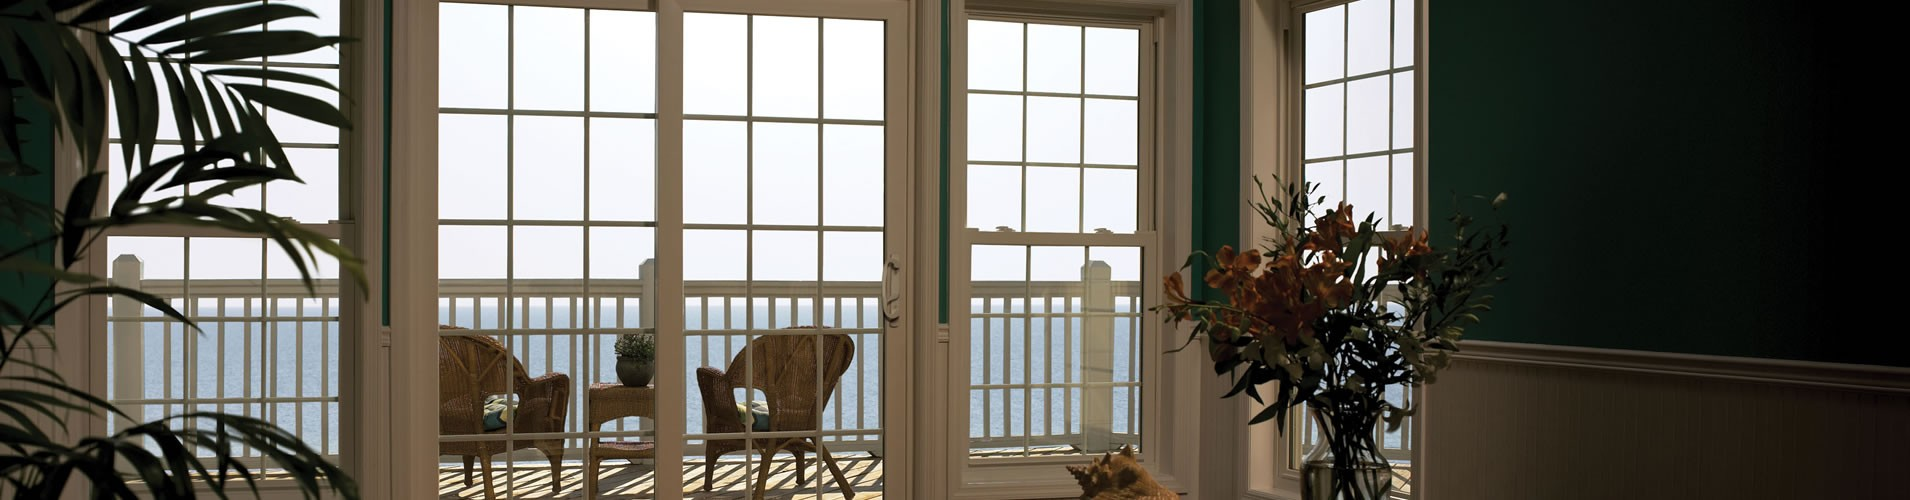 Port St. Lucie Sliding Glass Doors